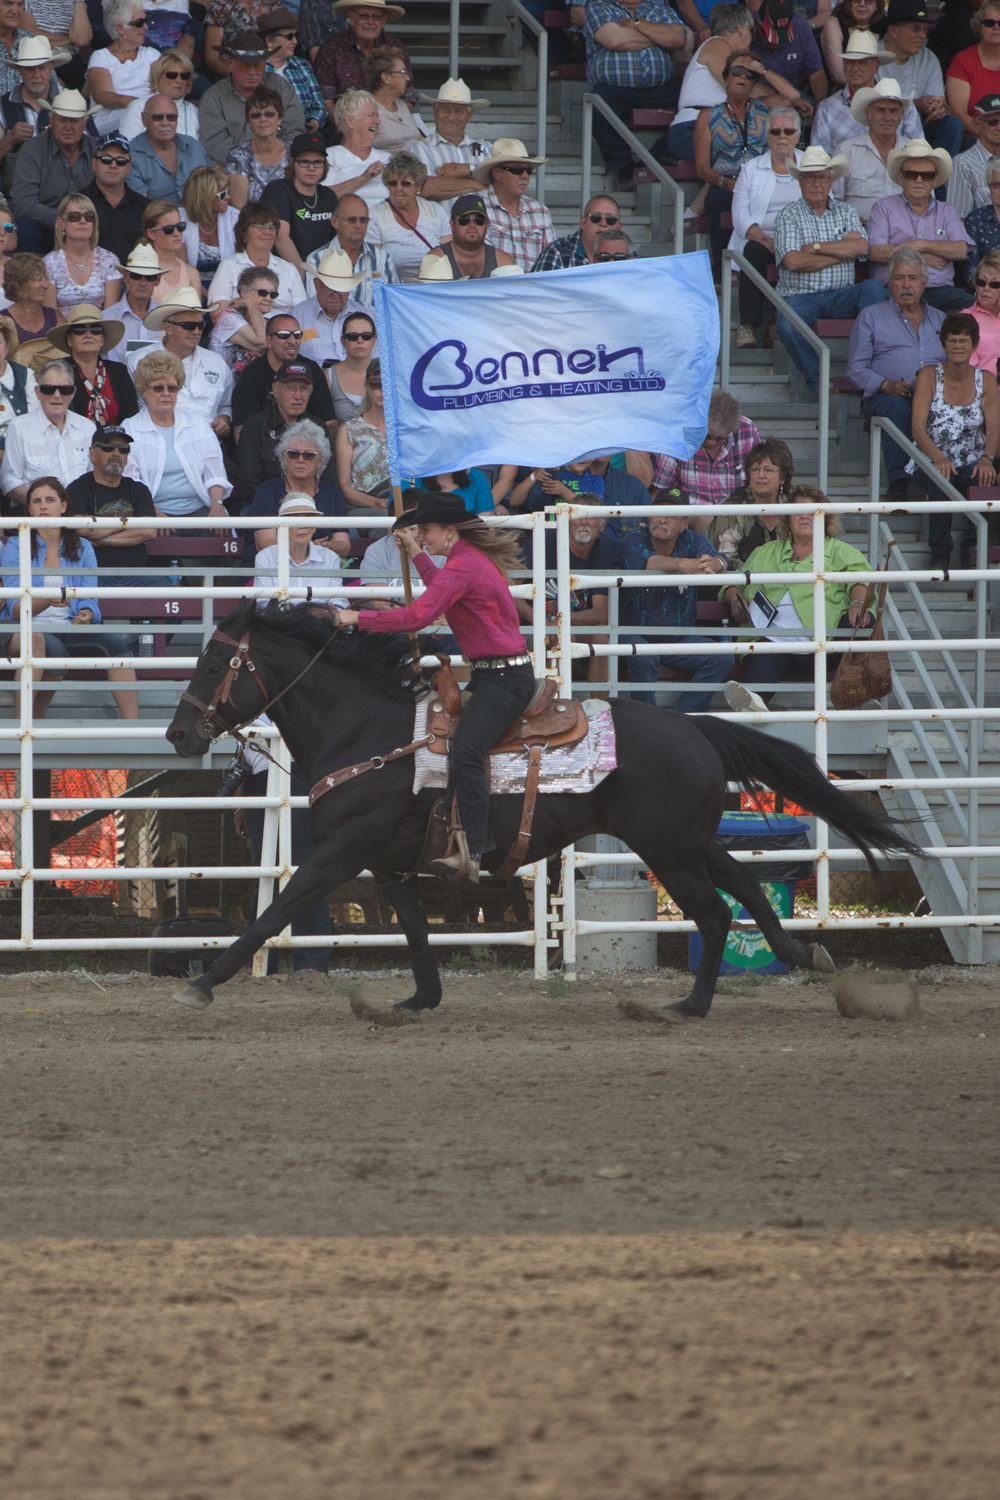 Thank you very much to  Benner Plumbing & Heating Ltd  for sponsoring the Rodeo Major Event - Bull Riding.